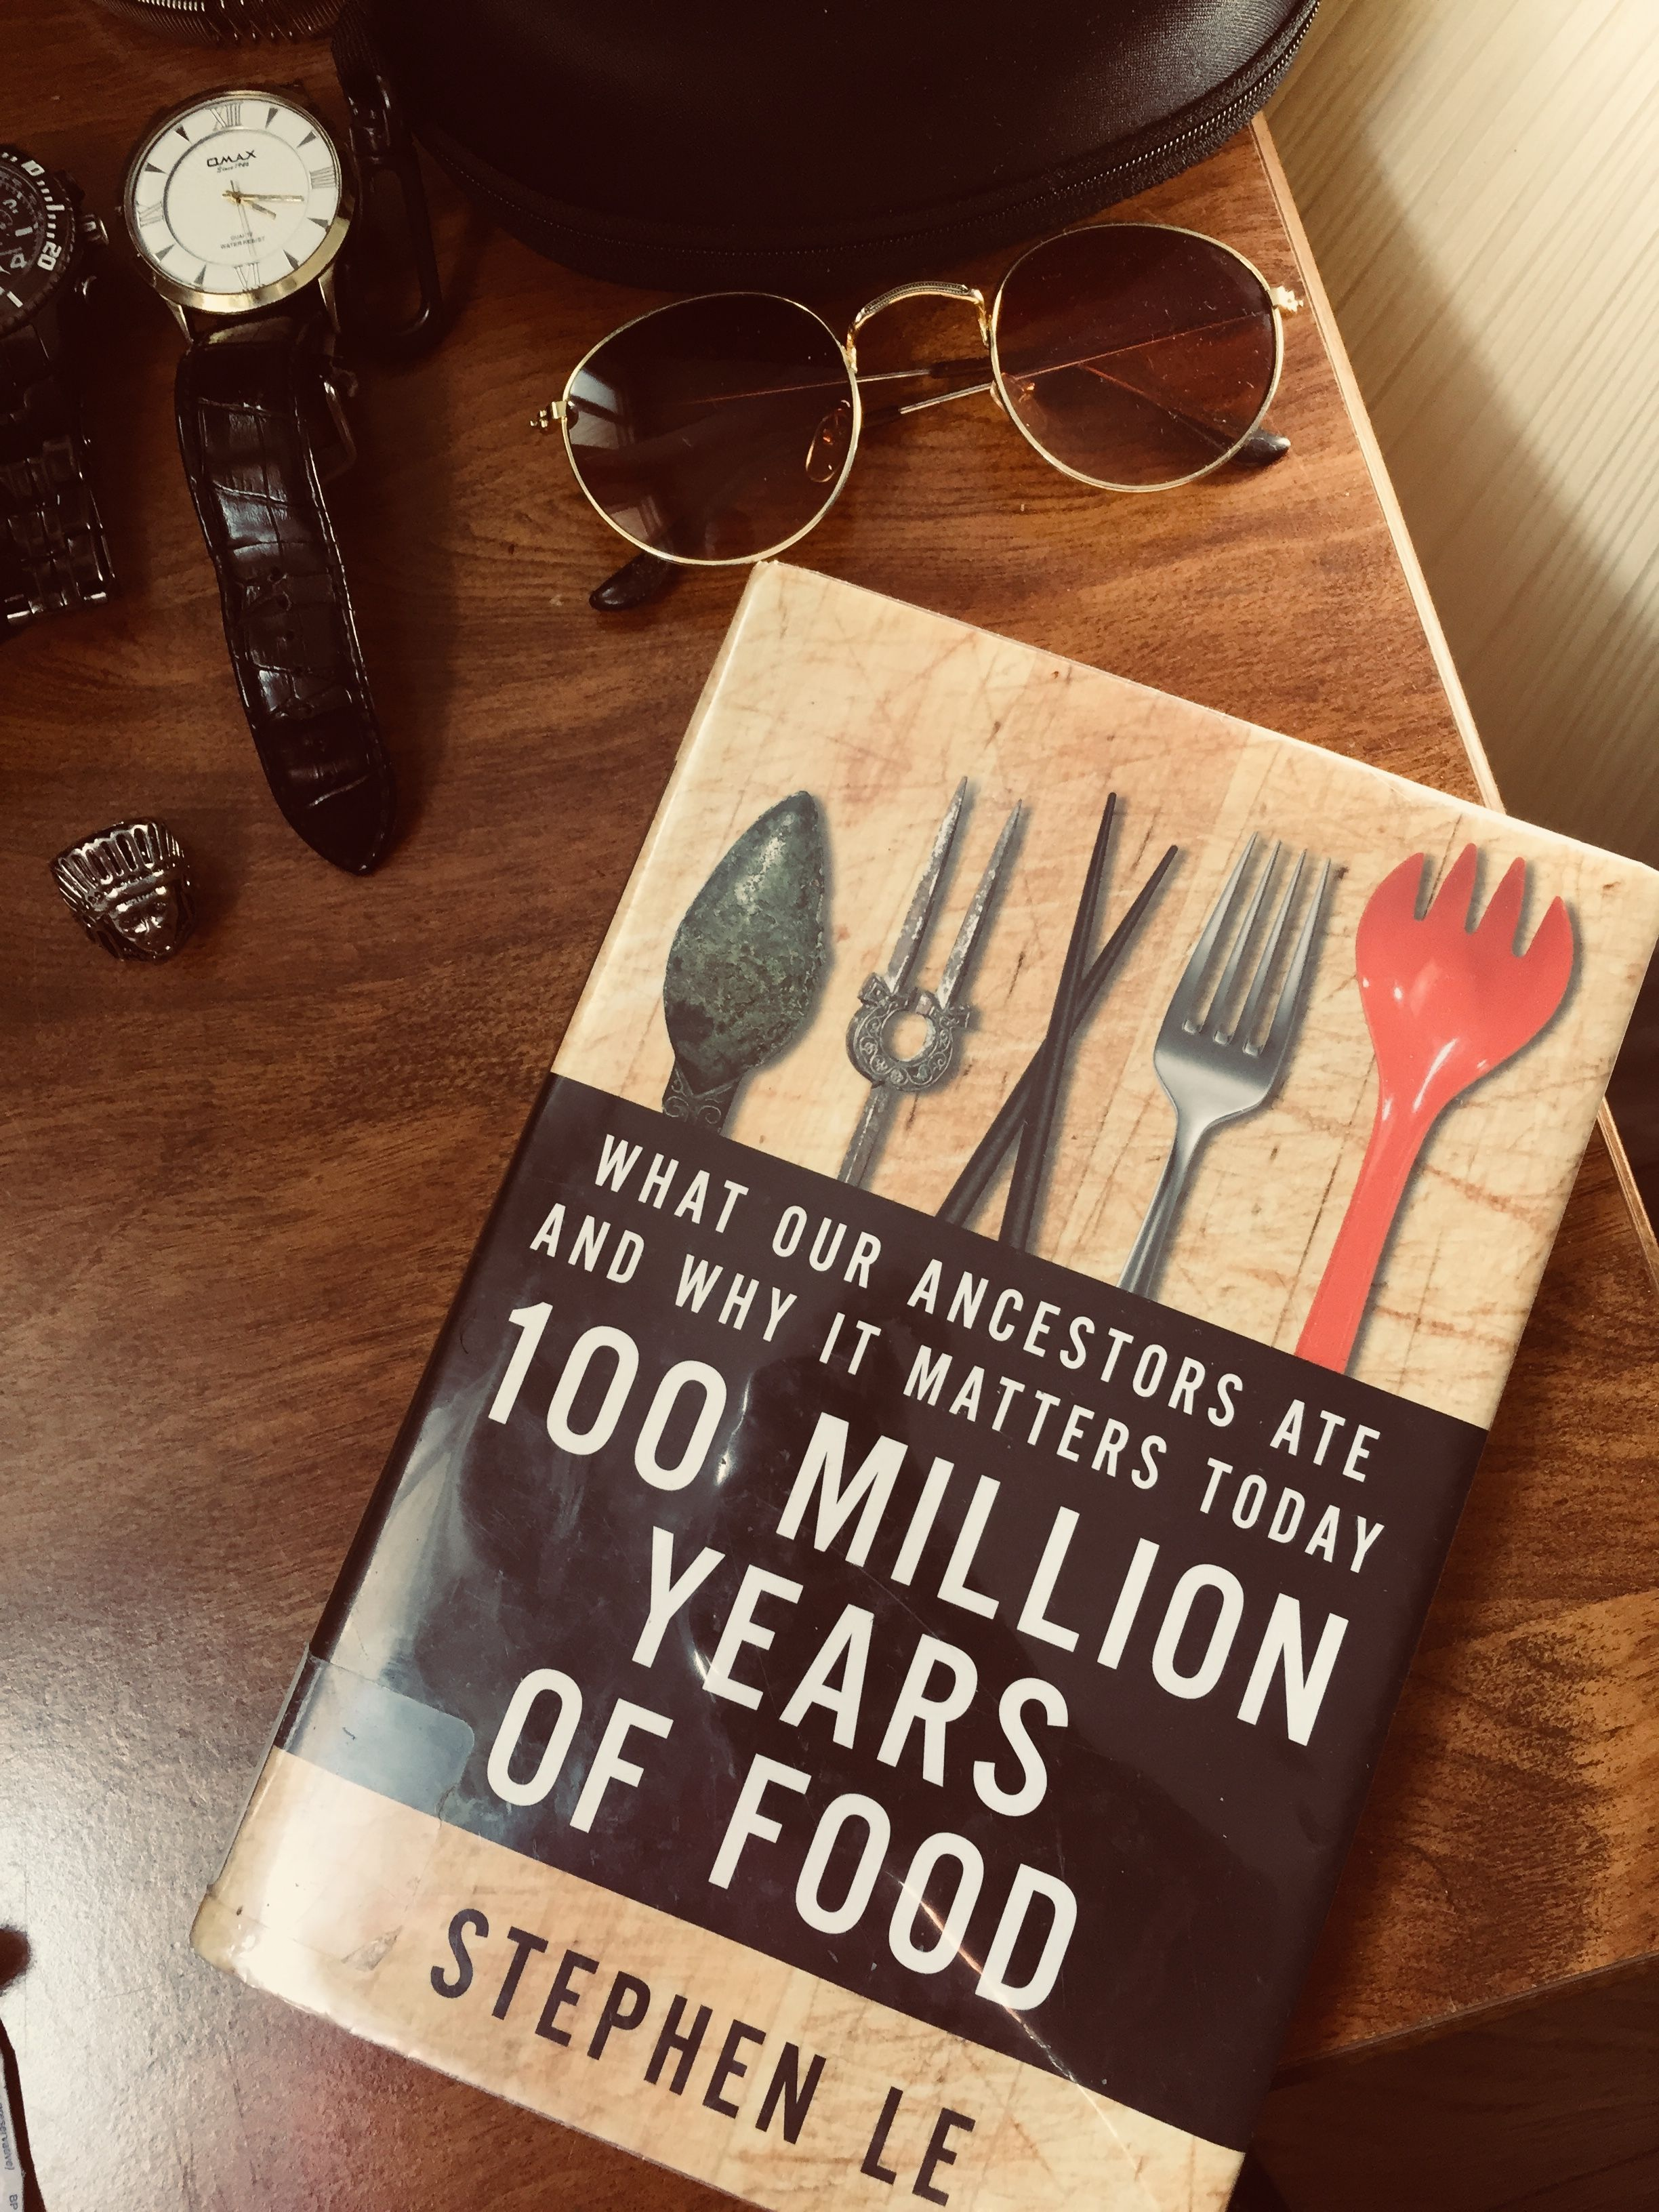 100 Million Years of Food. Stephen Le